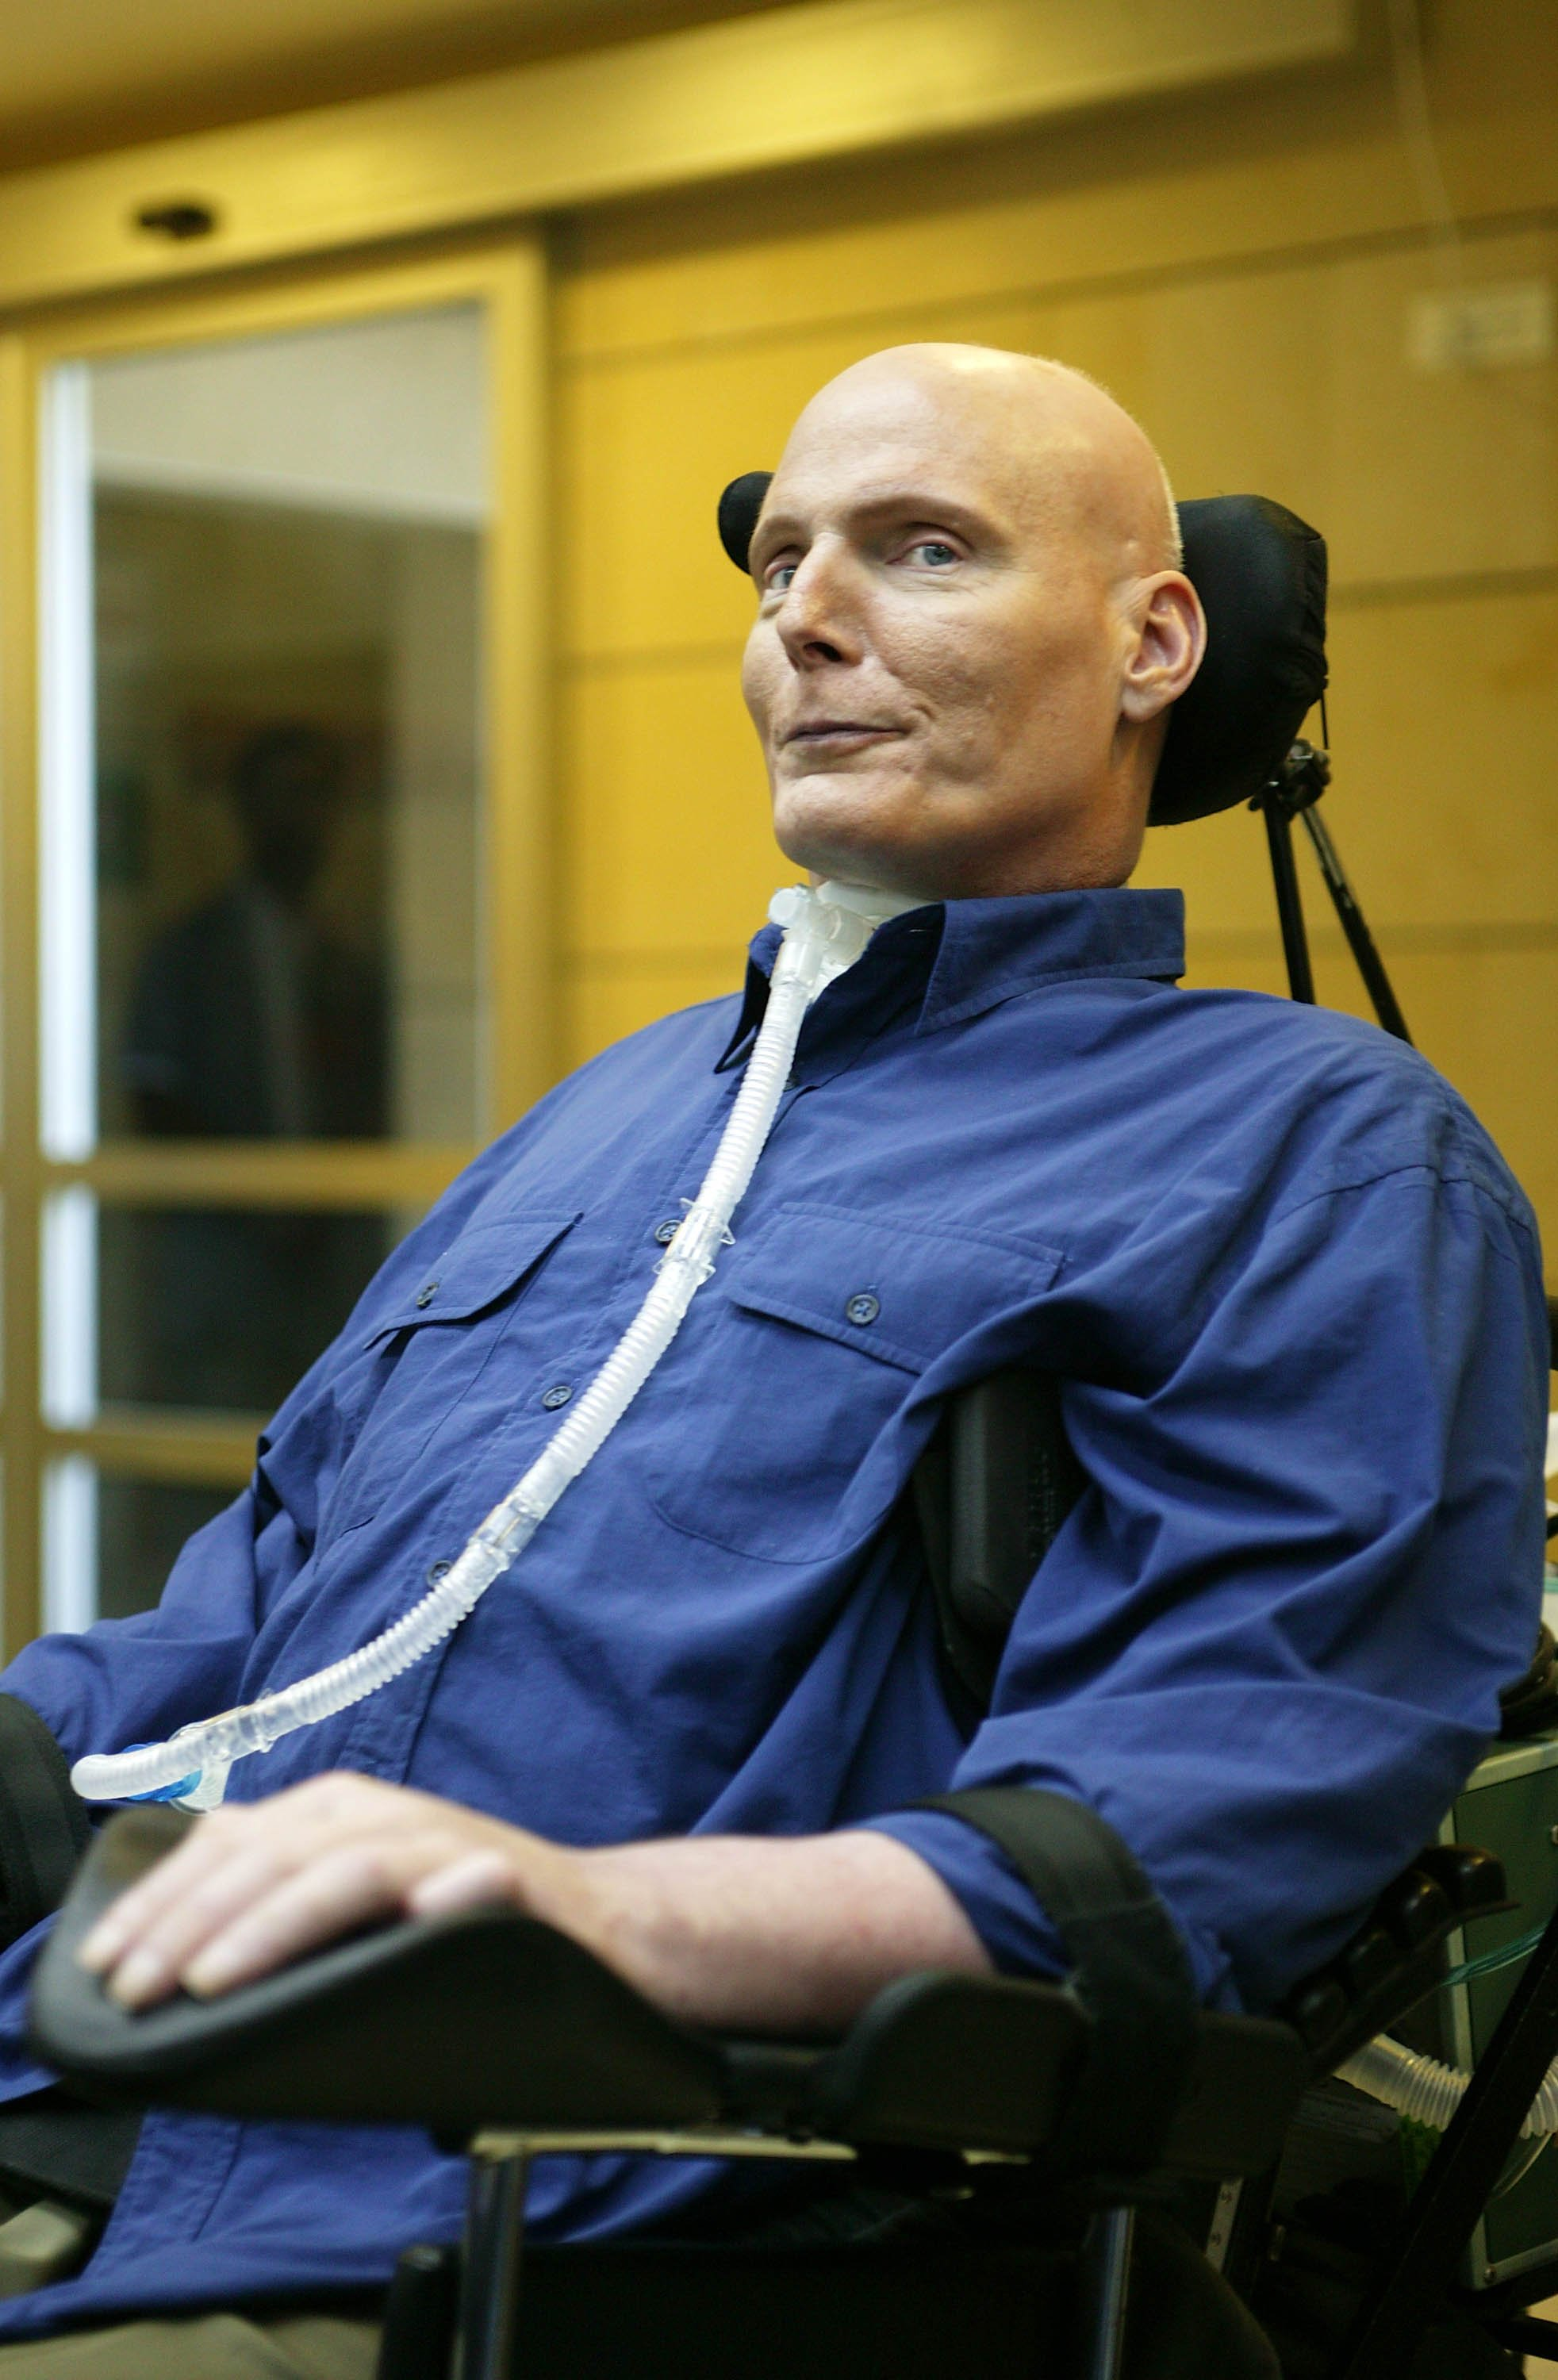 Christopher Reeve visits the Weizmann Institute of Science in Rehovot, Israel on July 29, 2003 | Photo: Getty Images